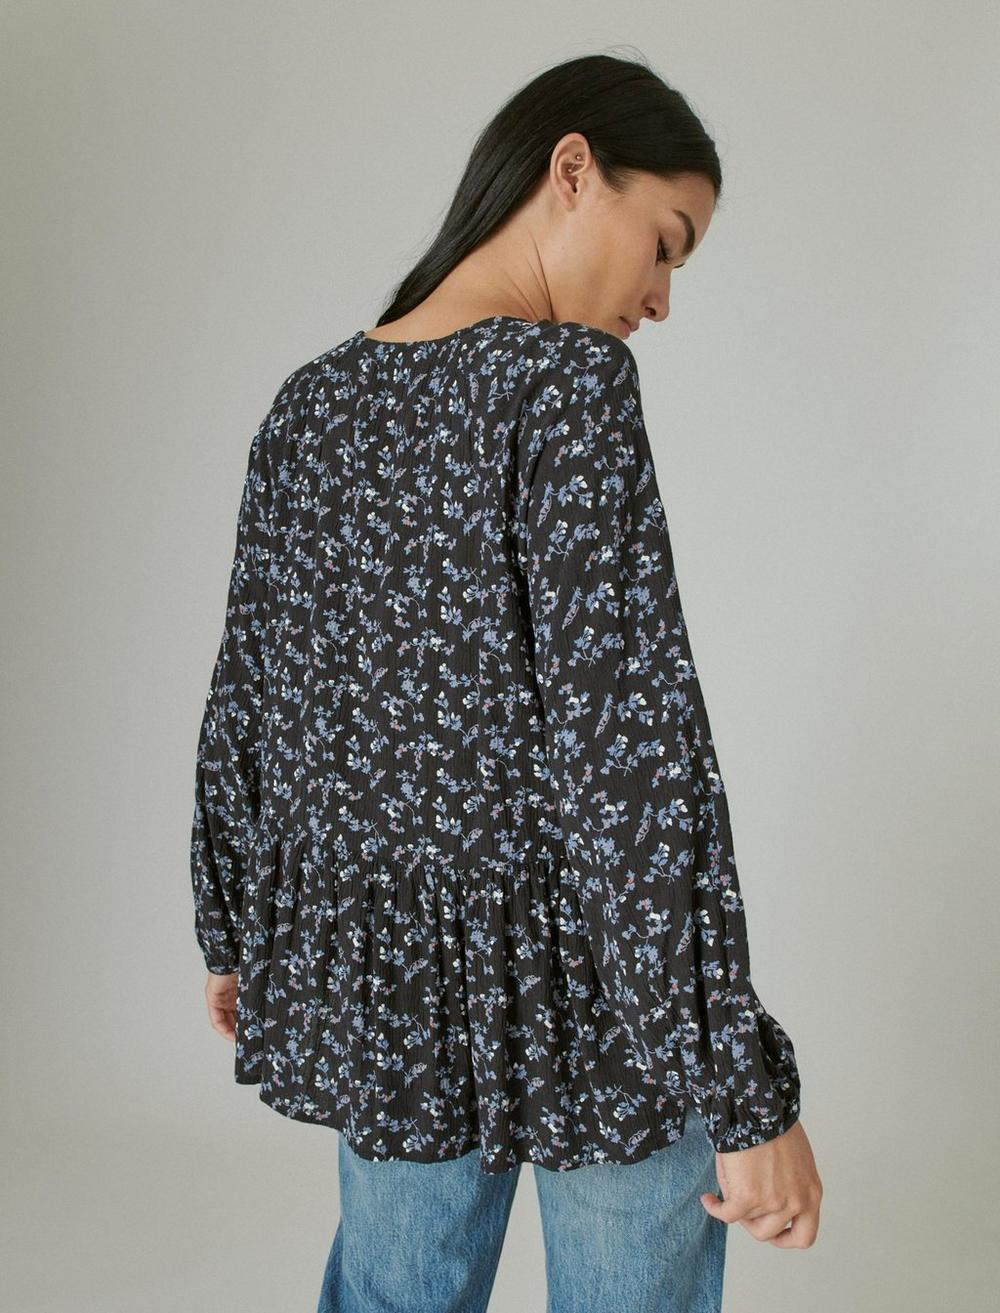 FLORAL PRINTED TUNIC, image 4